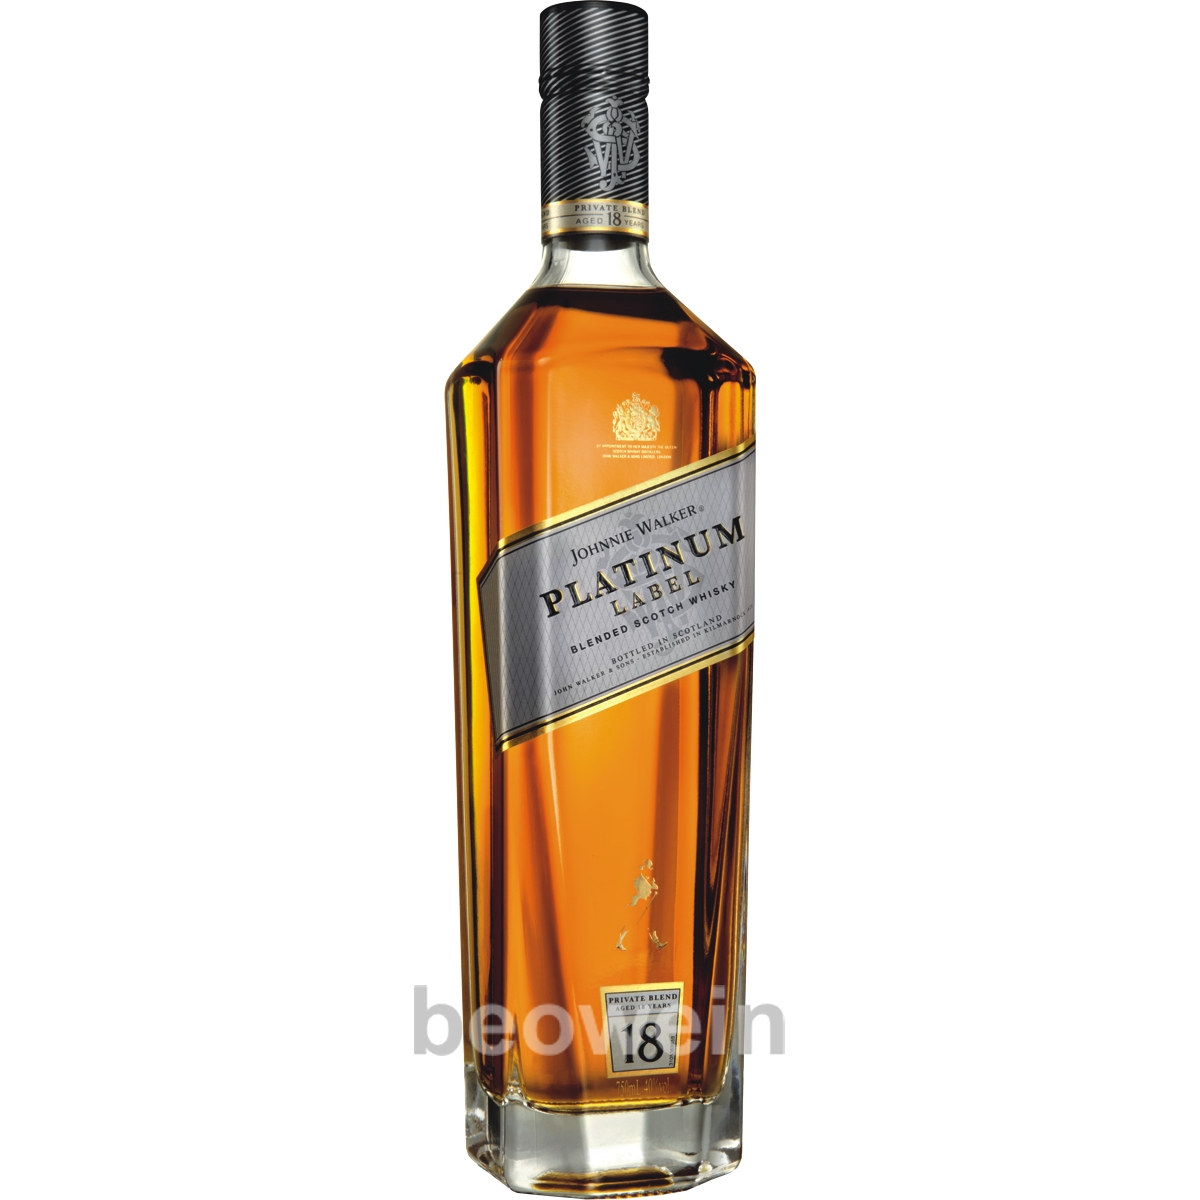 johnnie walker Send johnnie walker blue label as a gift to enjoy for any occasion this premium blended scotch whiskey makes every holiday a celebration reservebar good spirits.